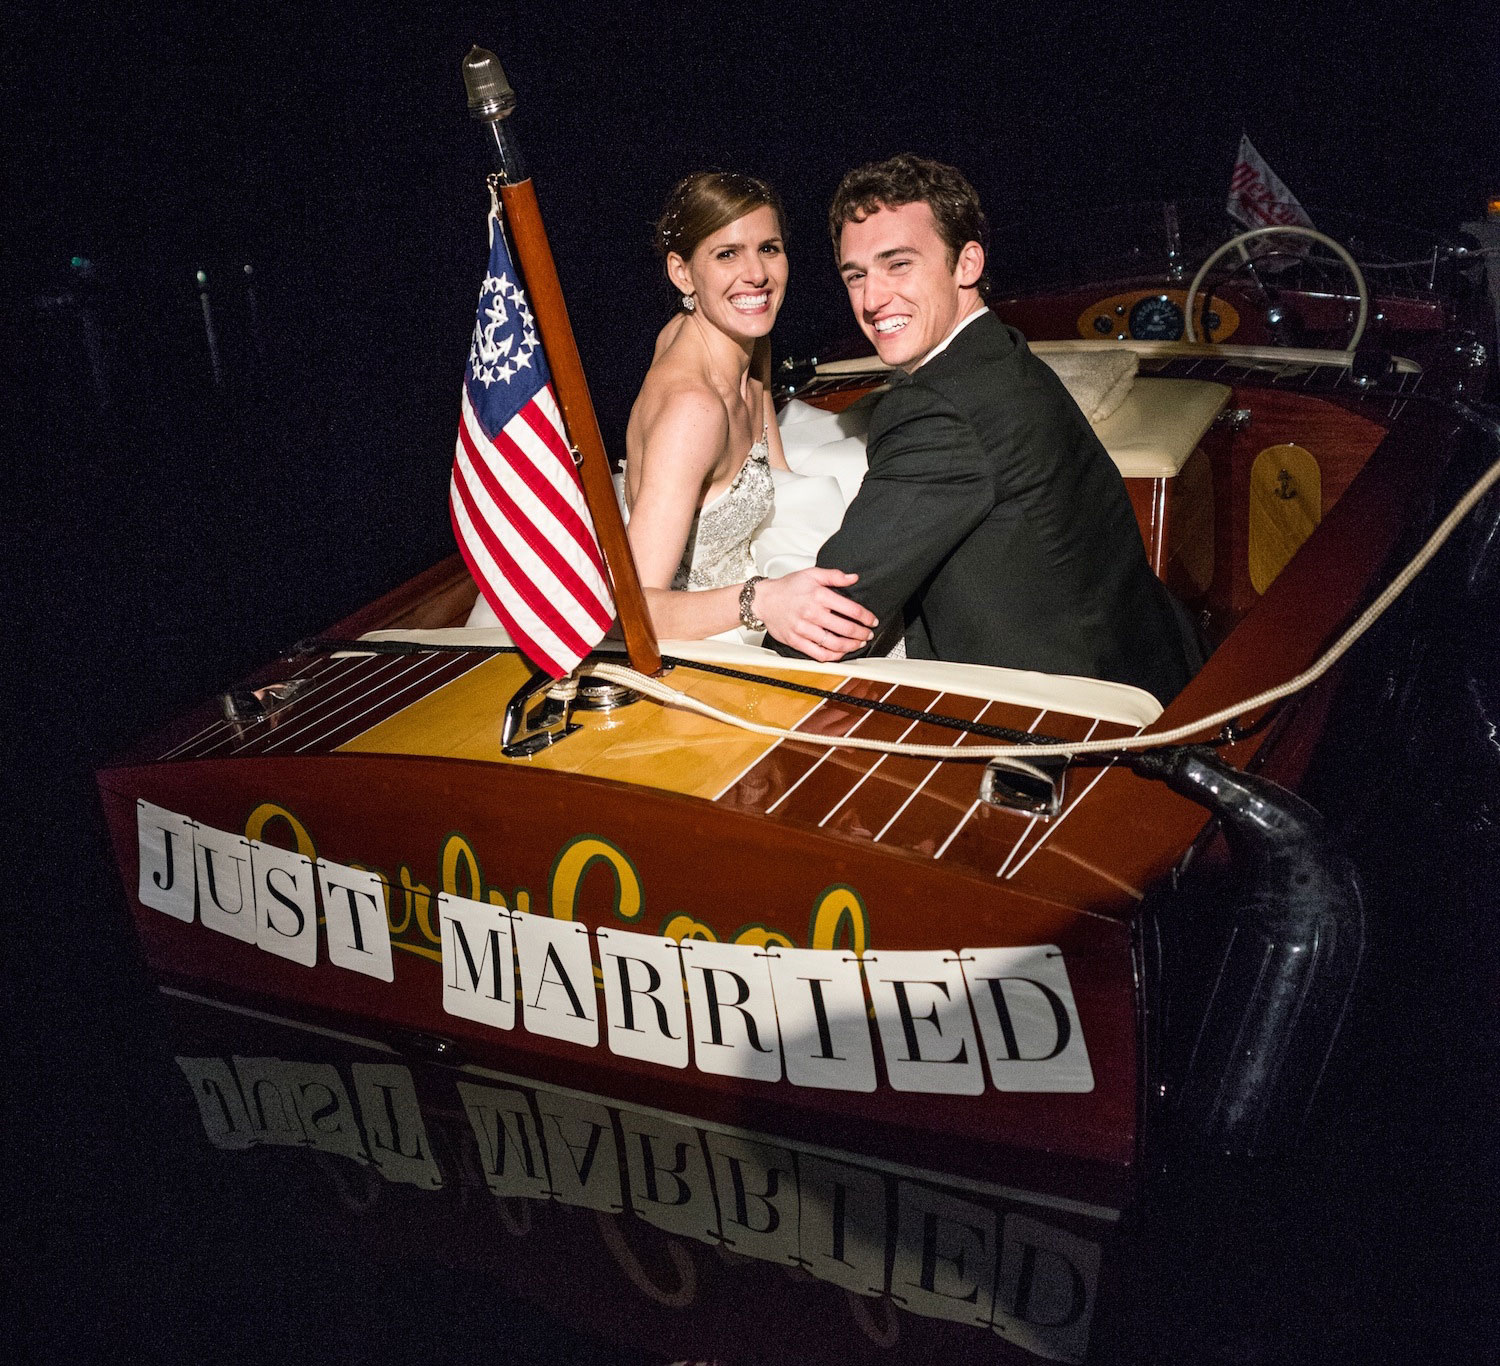 Bride and groom in Just Married wood boat